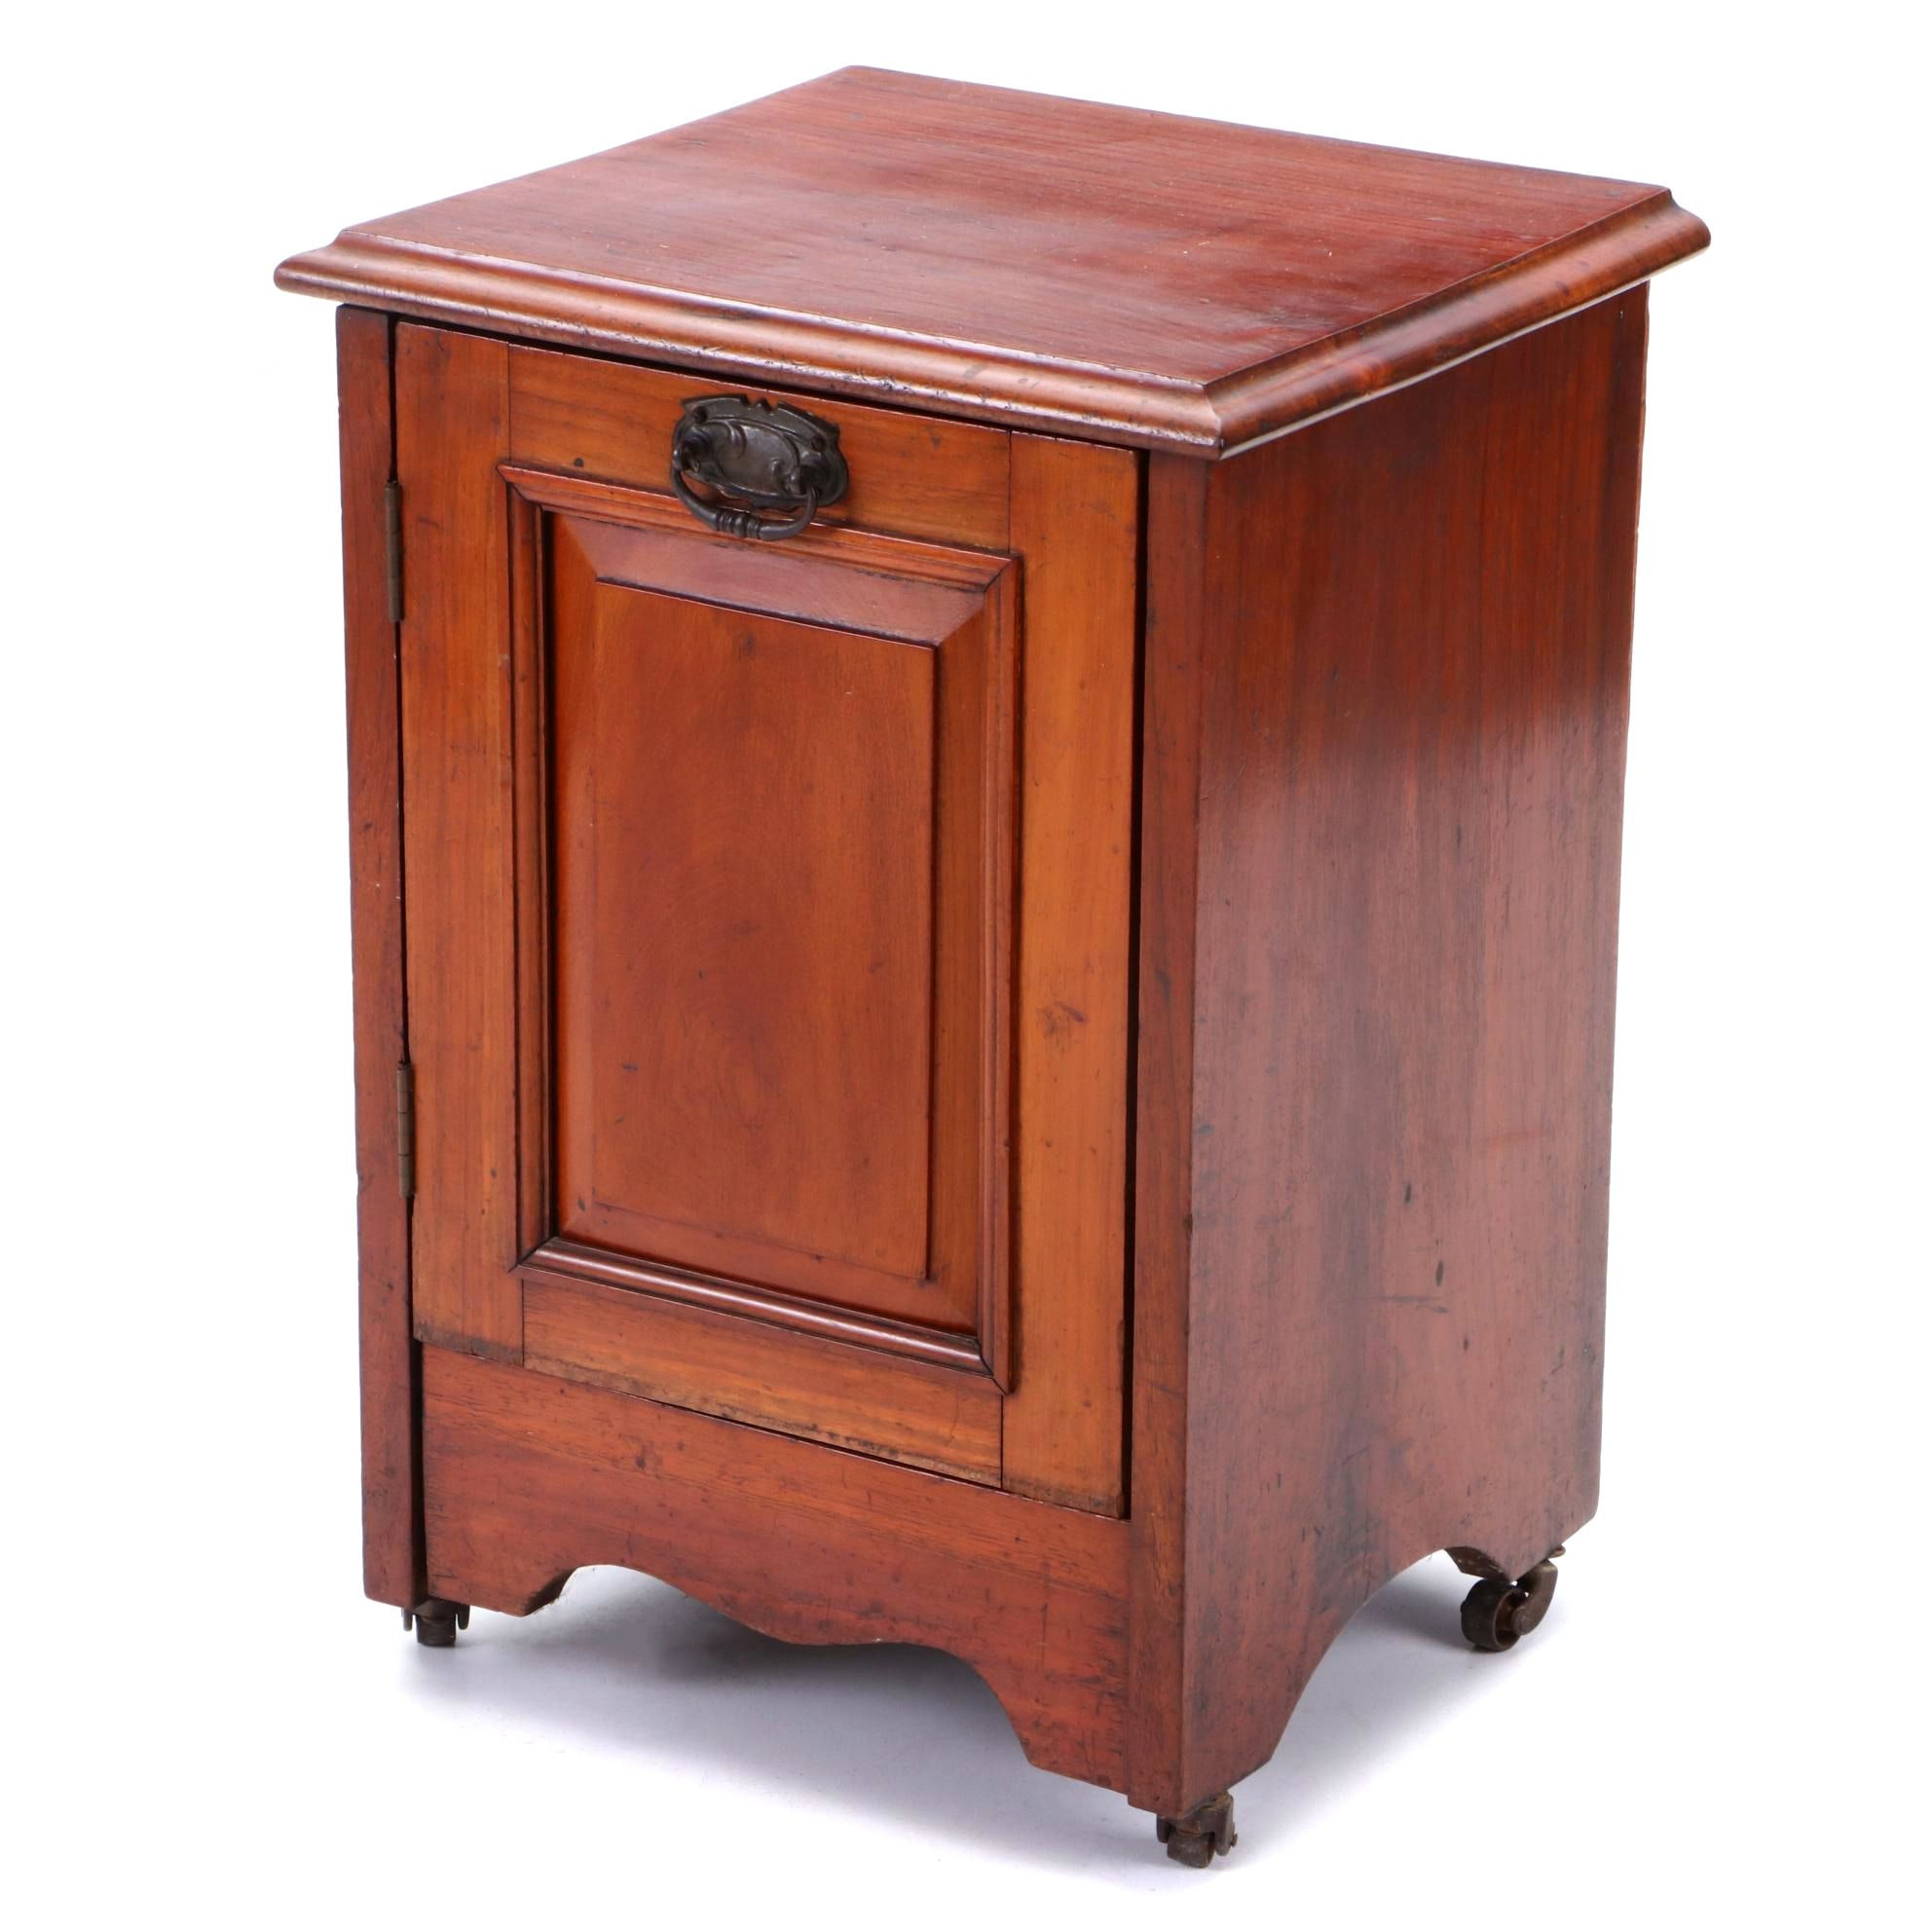 Early 20th Century Mahogany Rolling Coal Bin